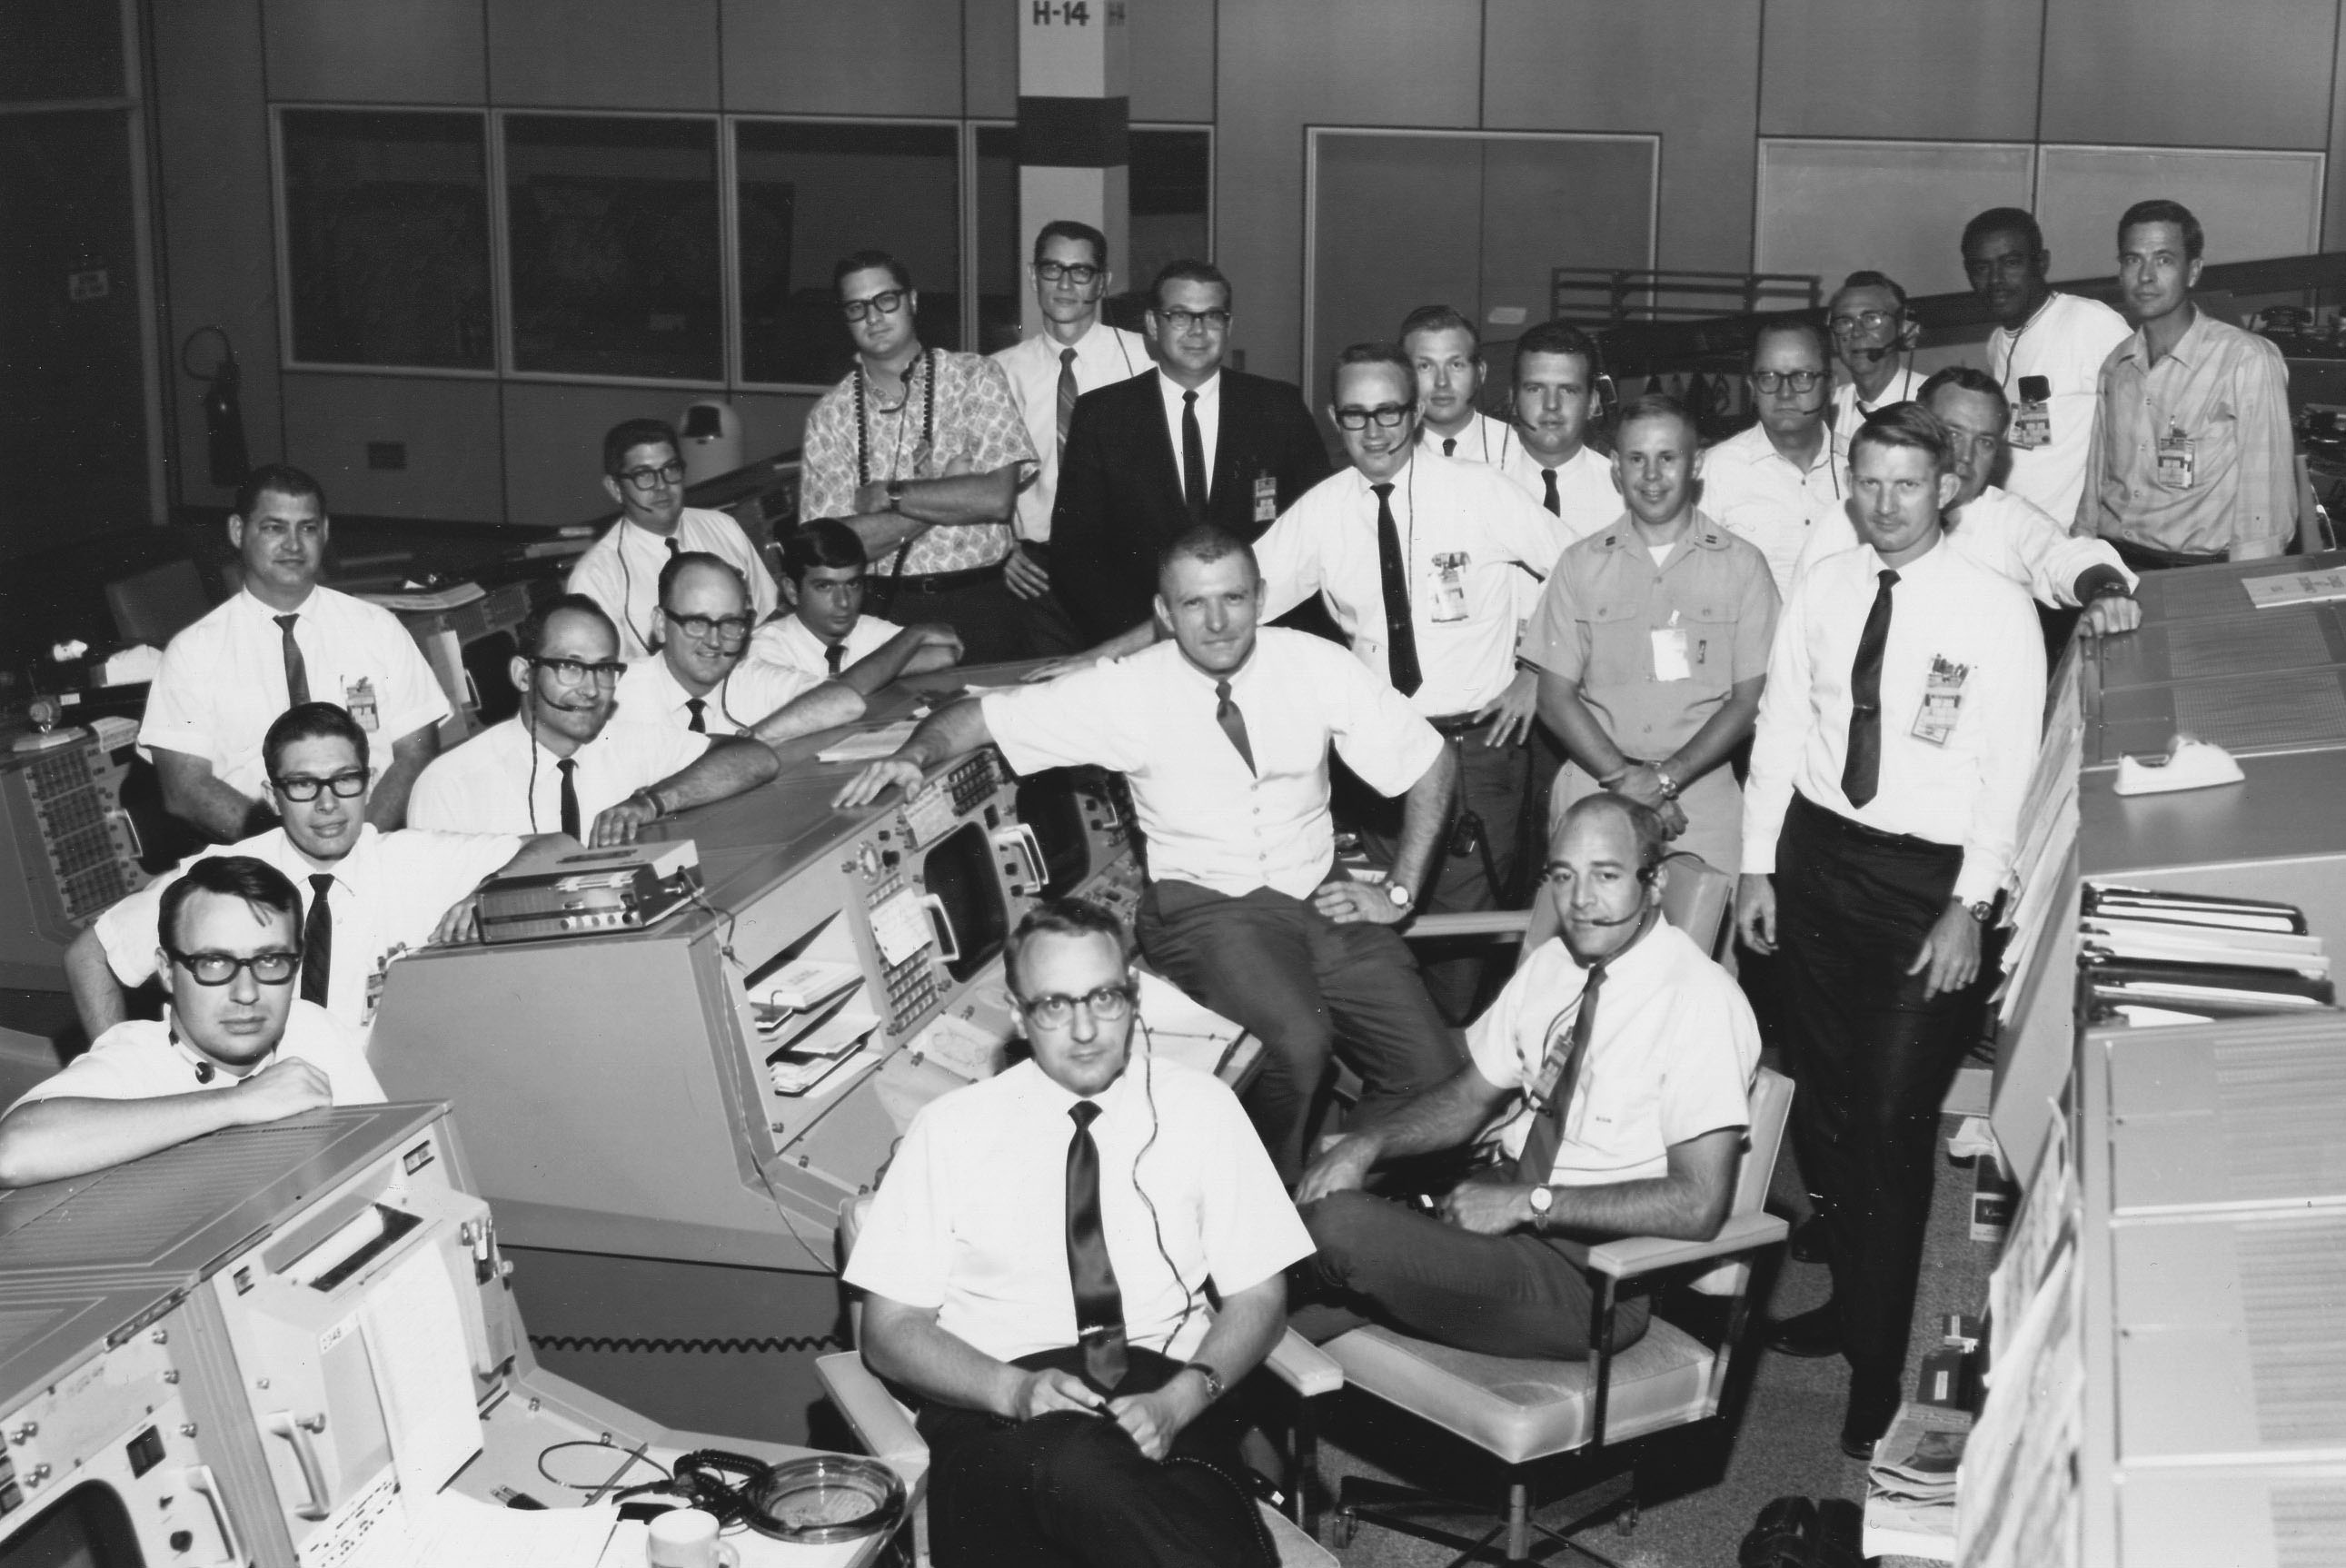 Glasses, skinny ties, pocket protectors, and short sleeves abound—these are the people who got America to the Moon.